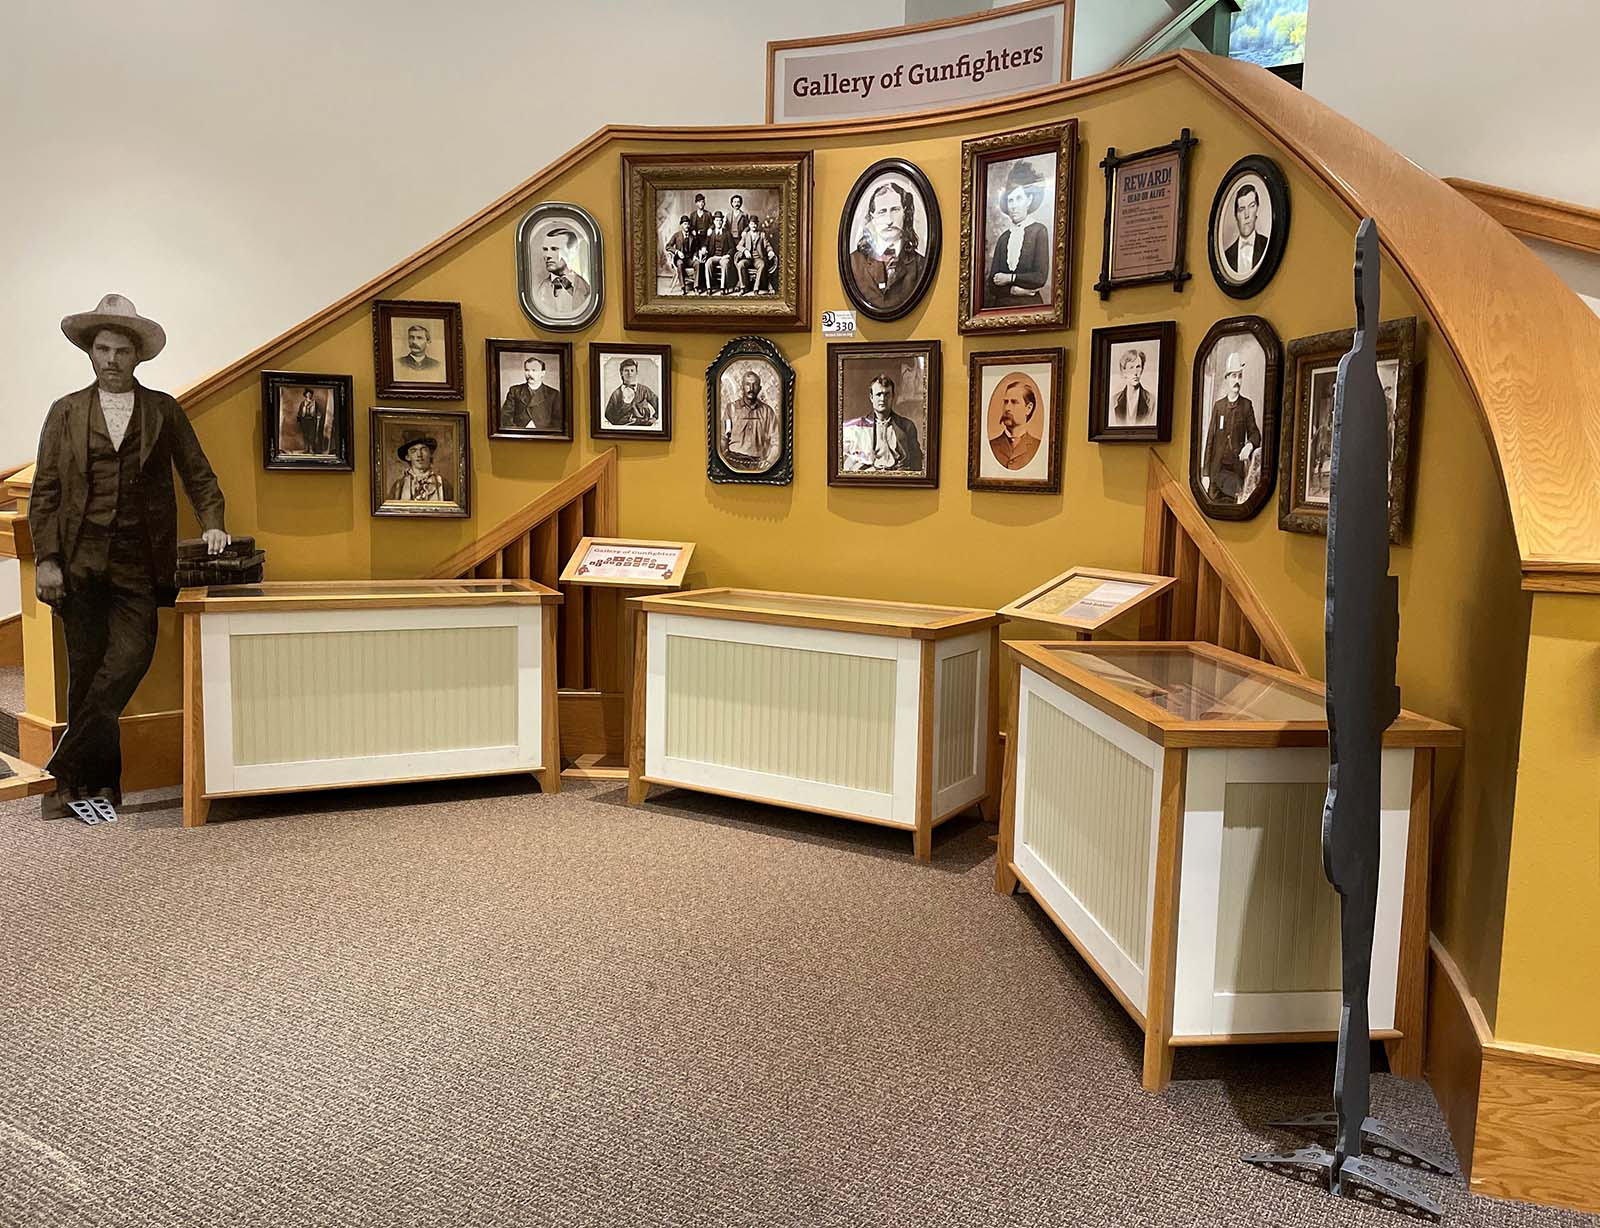 Today, the Shiebler Family Library Gallery includes the Gallery of Gunfighters, shown here, as well as exhibit space and information on the Western Writers of America.